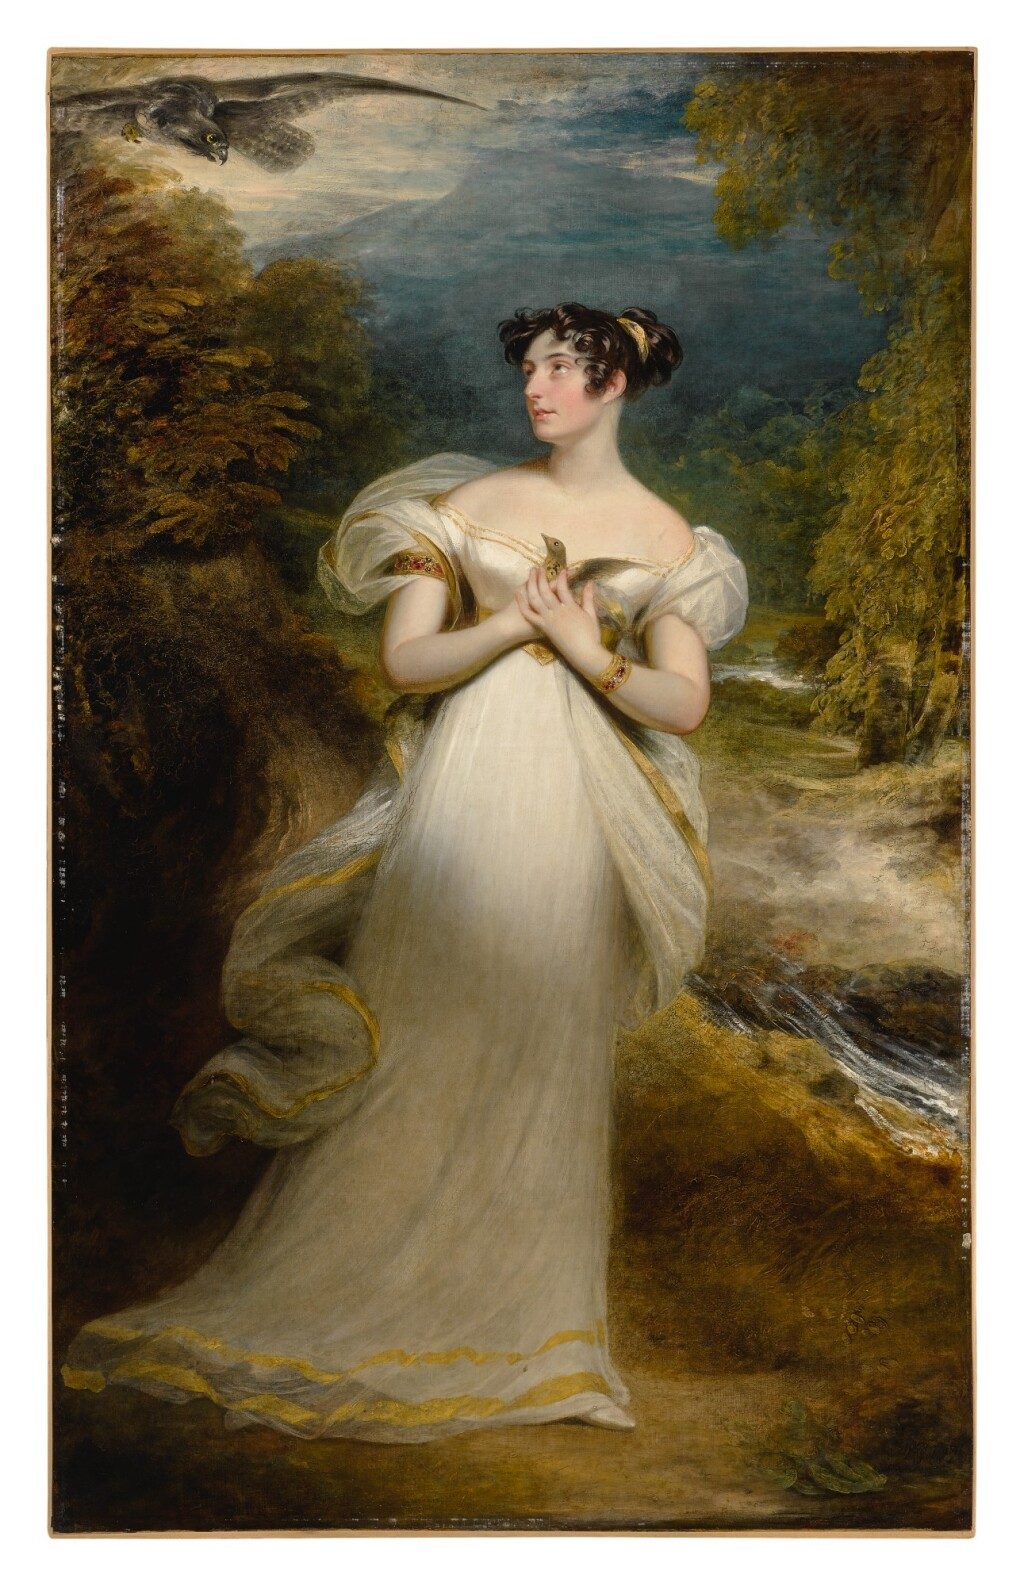 SIR WILLIAM BEECHEY, R.A.   PORTRAIT OF MISS MARY PAYNE, LATER MRS. DOLPHIN, FULL-LENGTH, IN A WHITE GOWN AND HOLDING A THRUSH AS AN EAGLE SWOOPS TOWARD HER, IN A WOODED LANDSCAPE